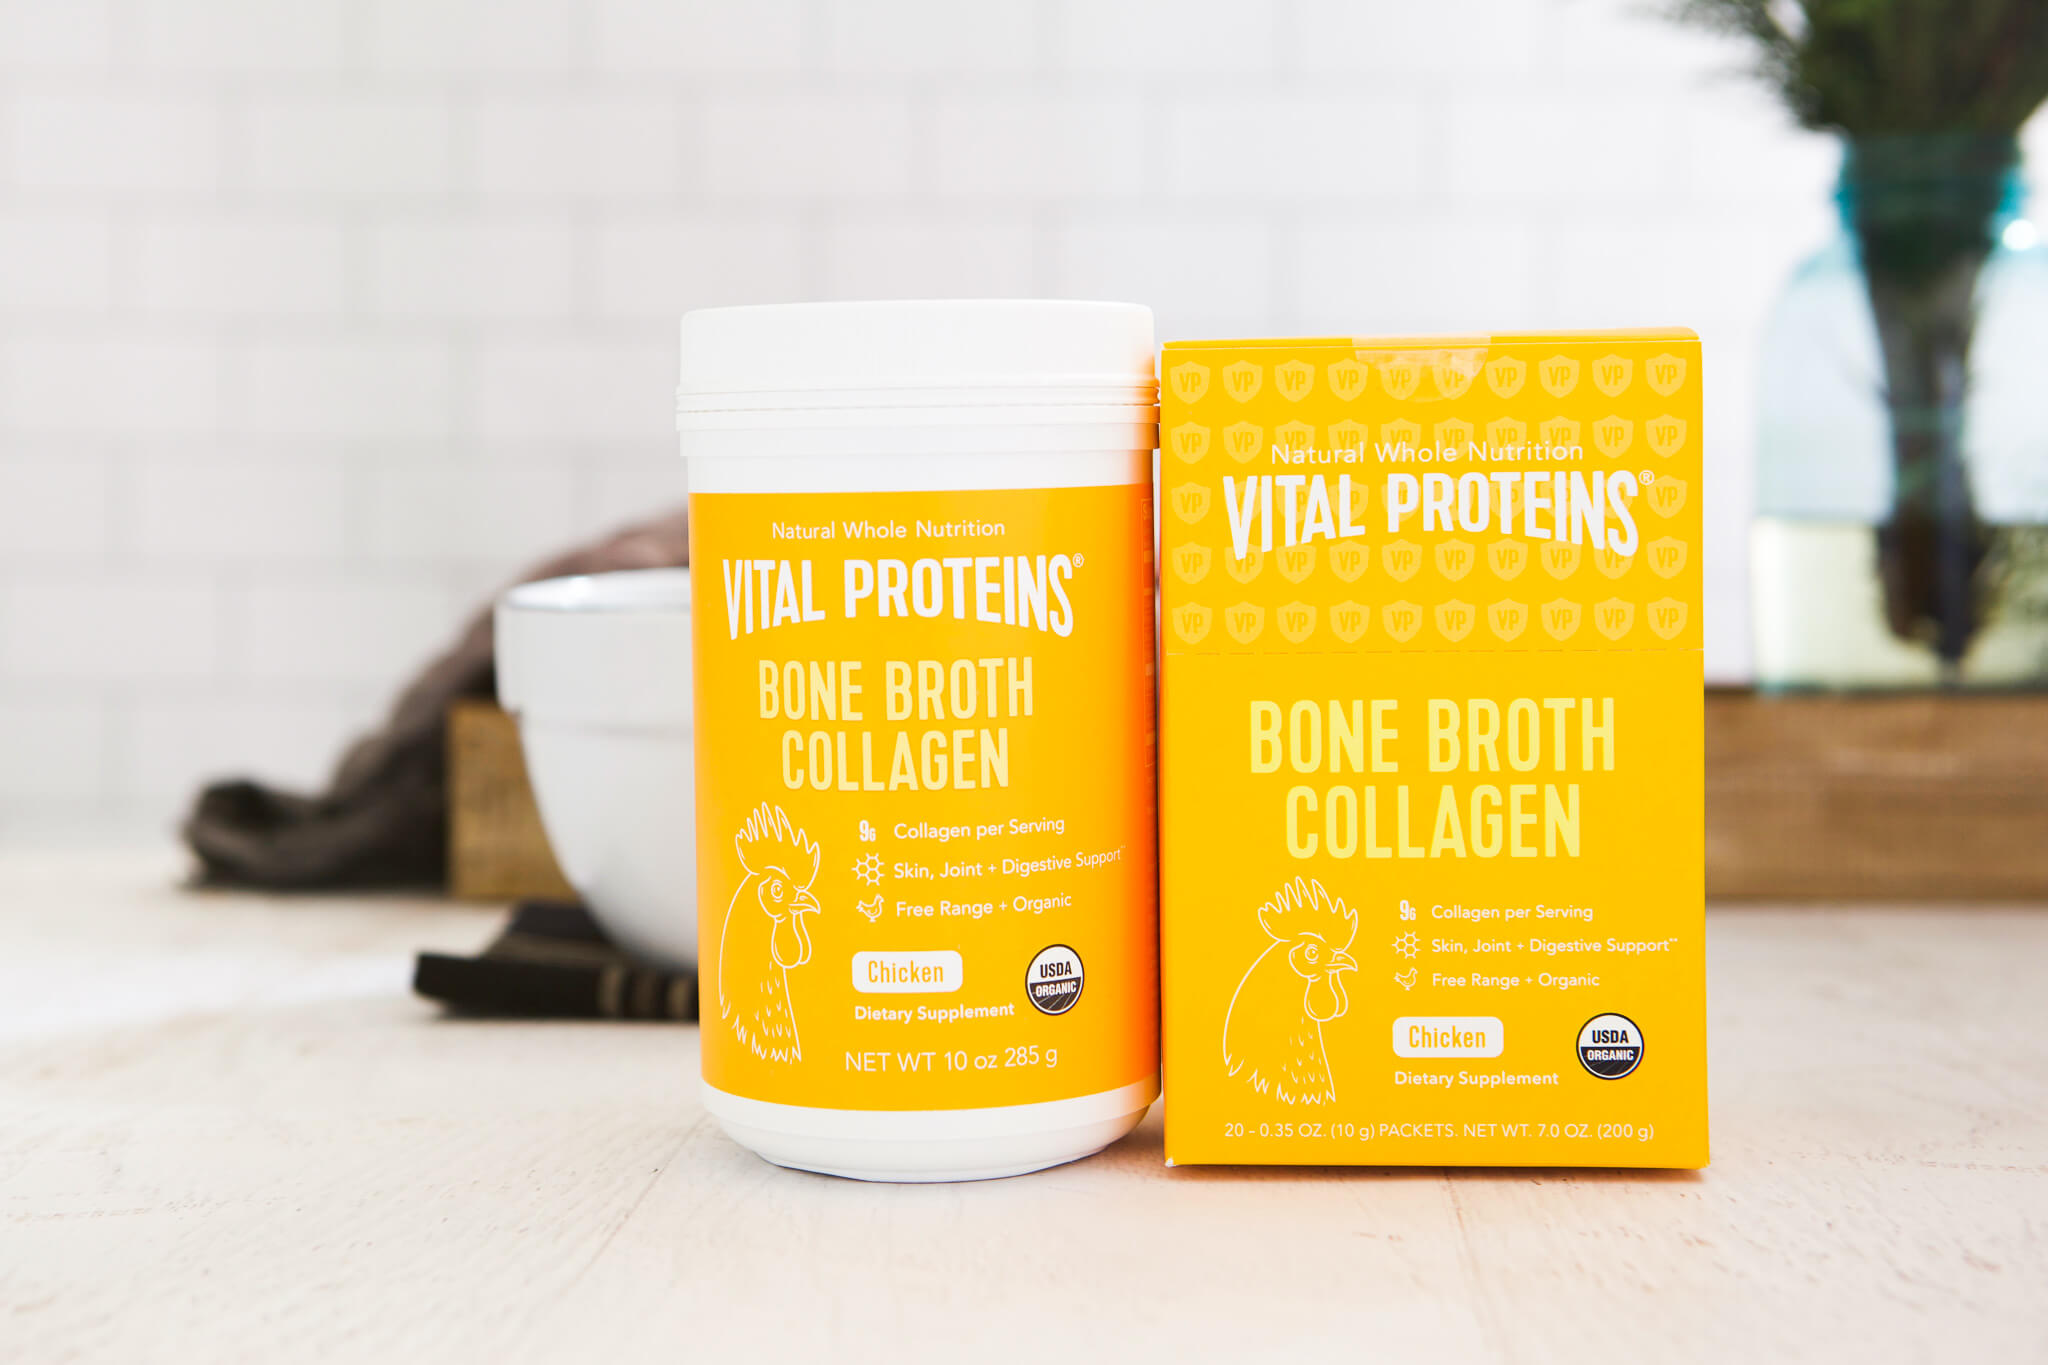 Bone Broth Benefits www.sarahkayhoffman.com #guthealth #bonebroth #guthealing #StayVital Vital Proteins Chicken Collagen Bone Broth